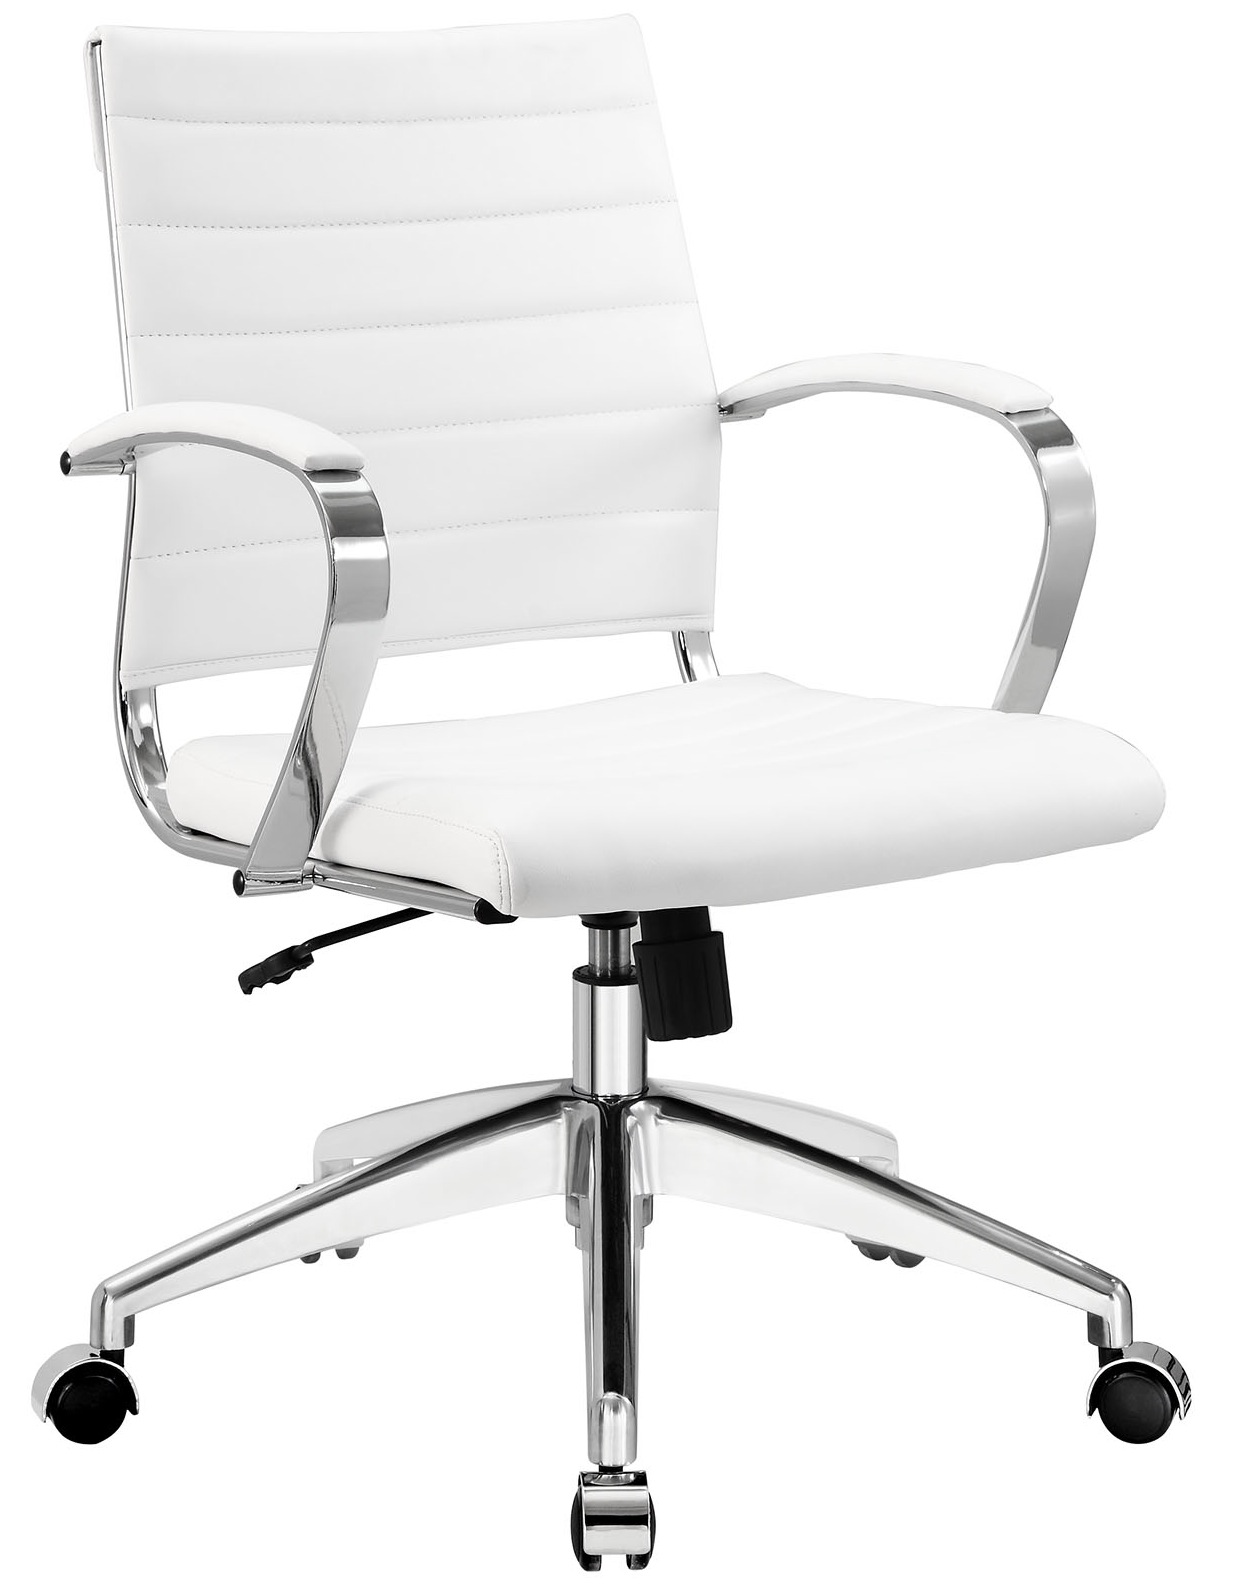 white leather desk chair aria leather office chair advancedinteriordesigns com 21991 | aria office chair white